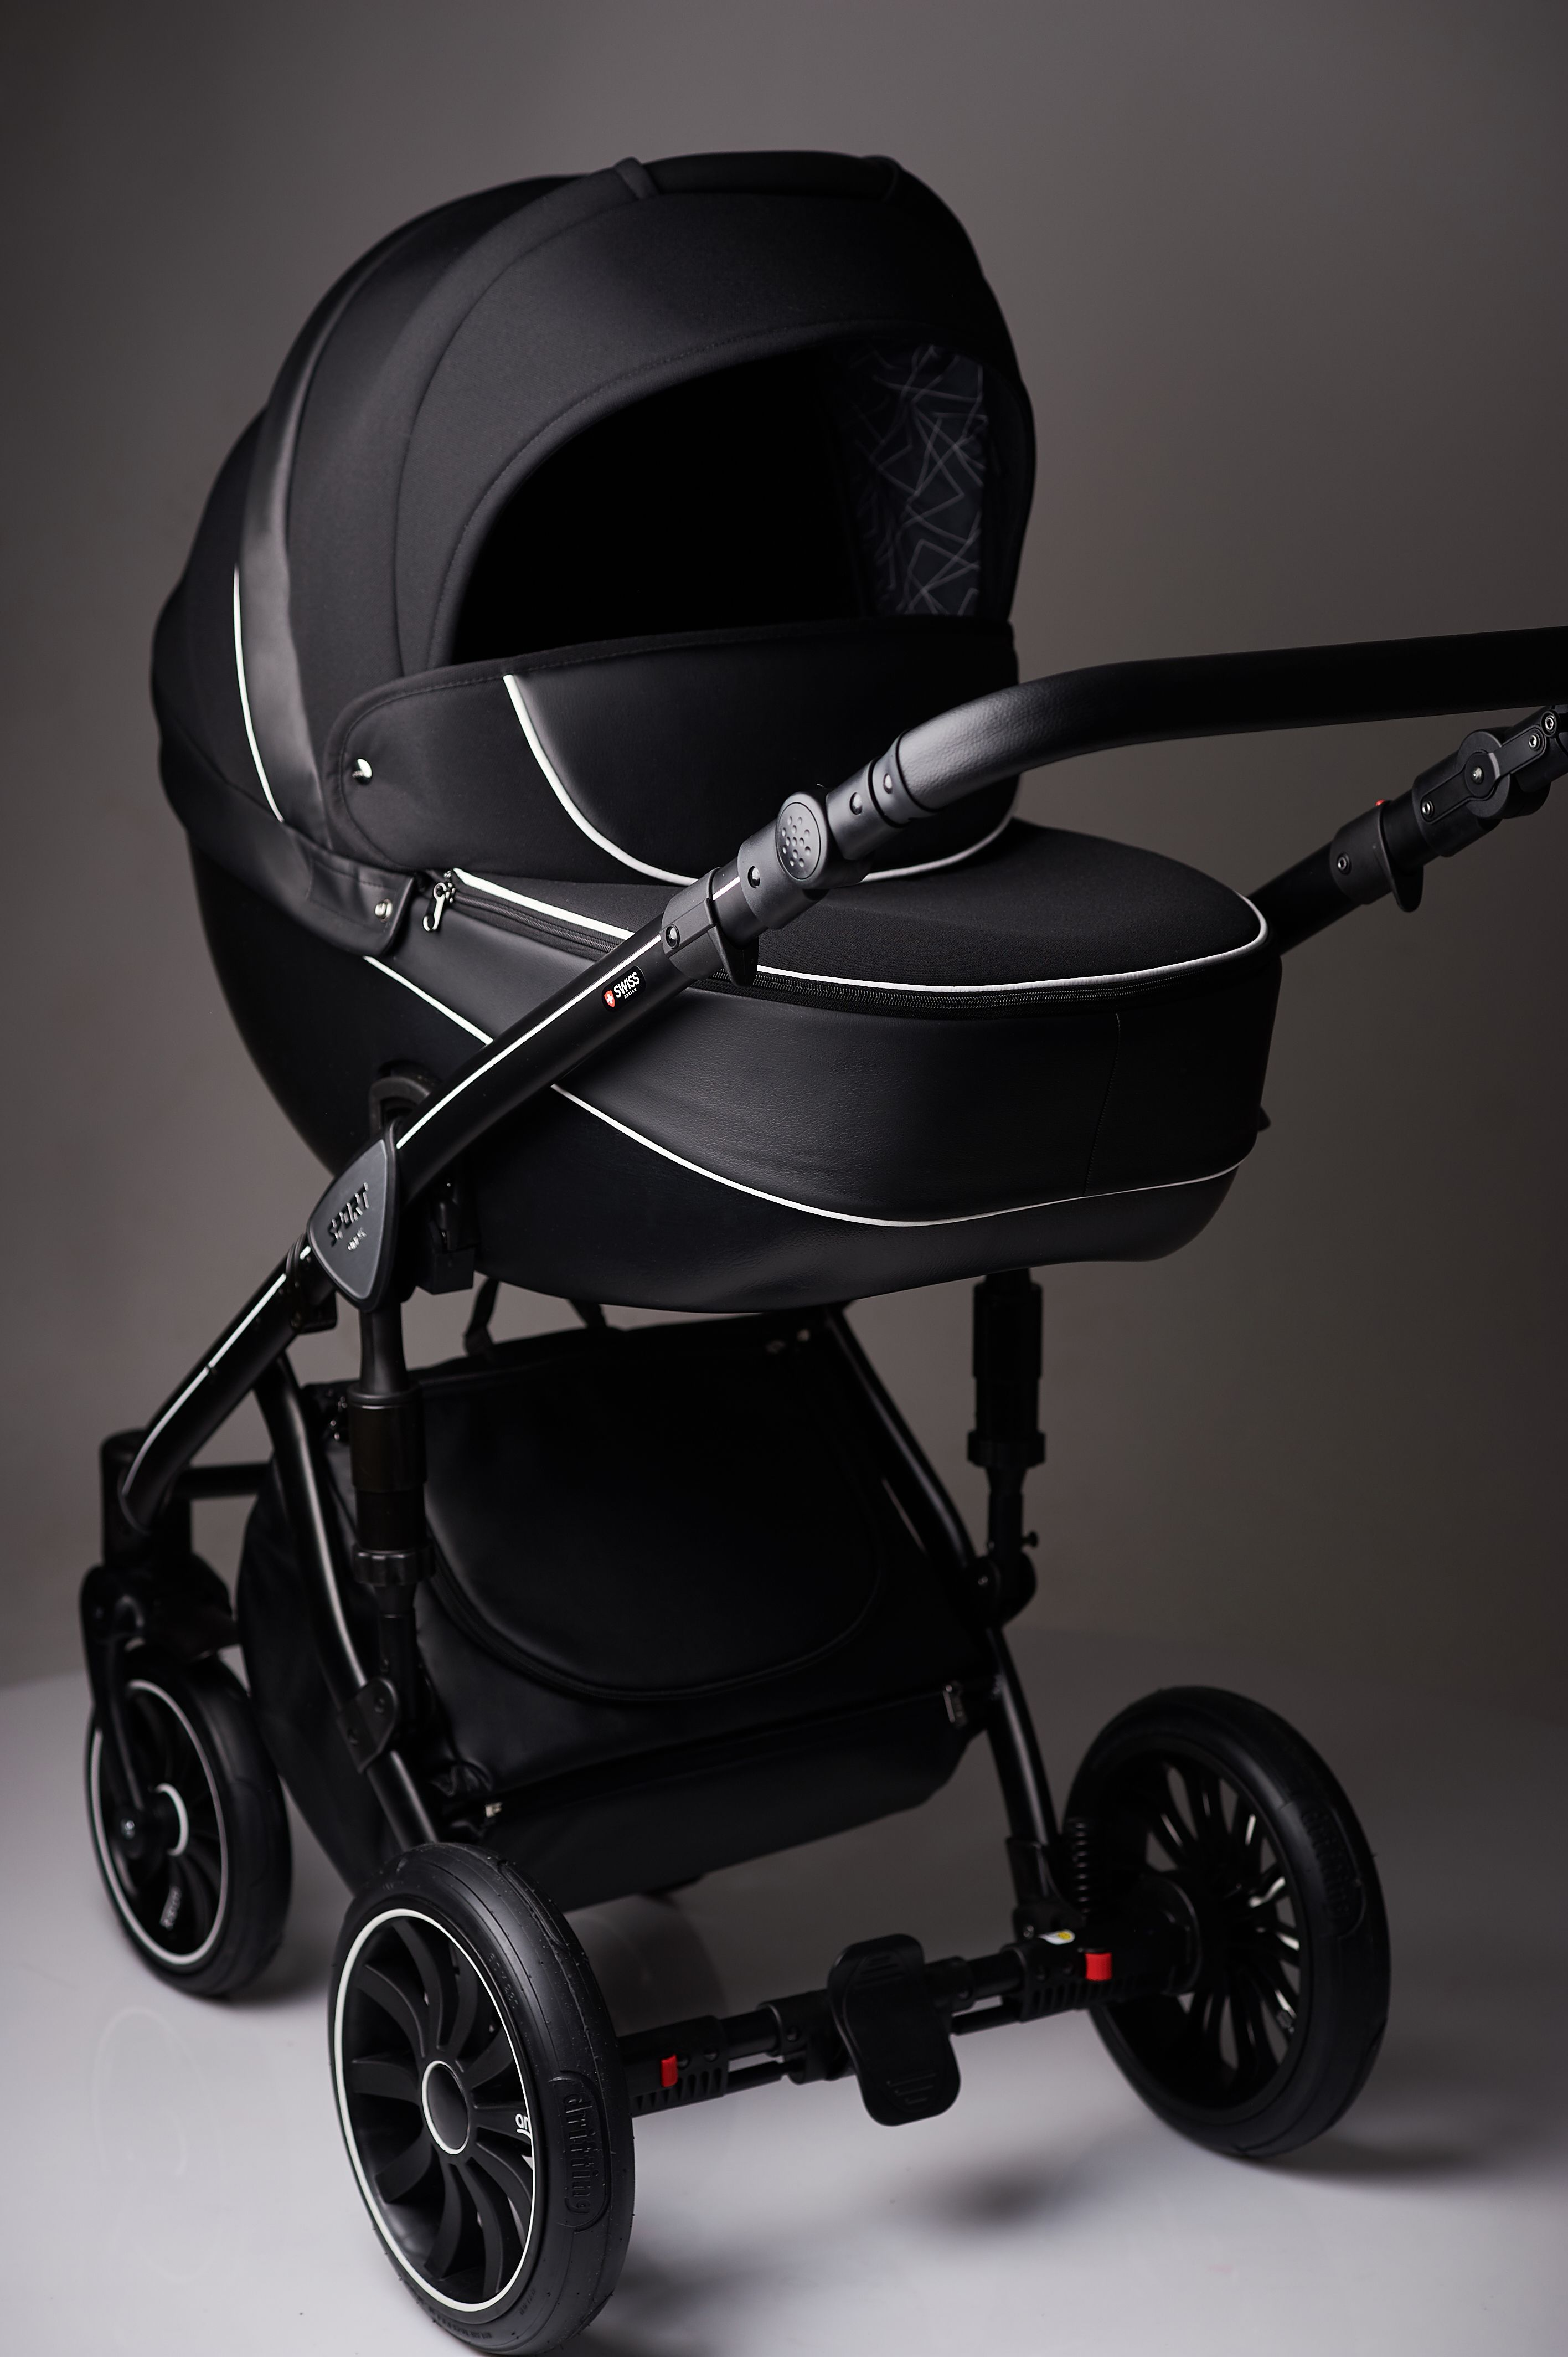 Pin by Sara P on Baby strollers and other things Baby